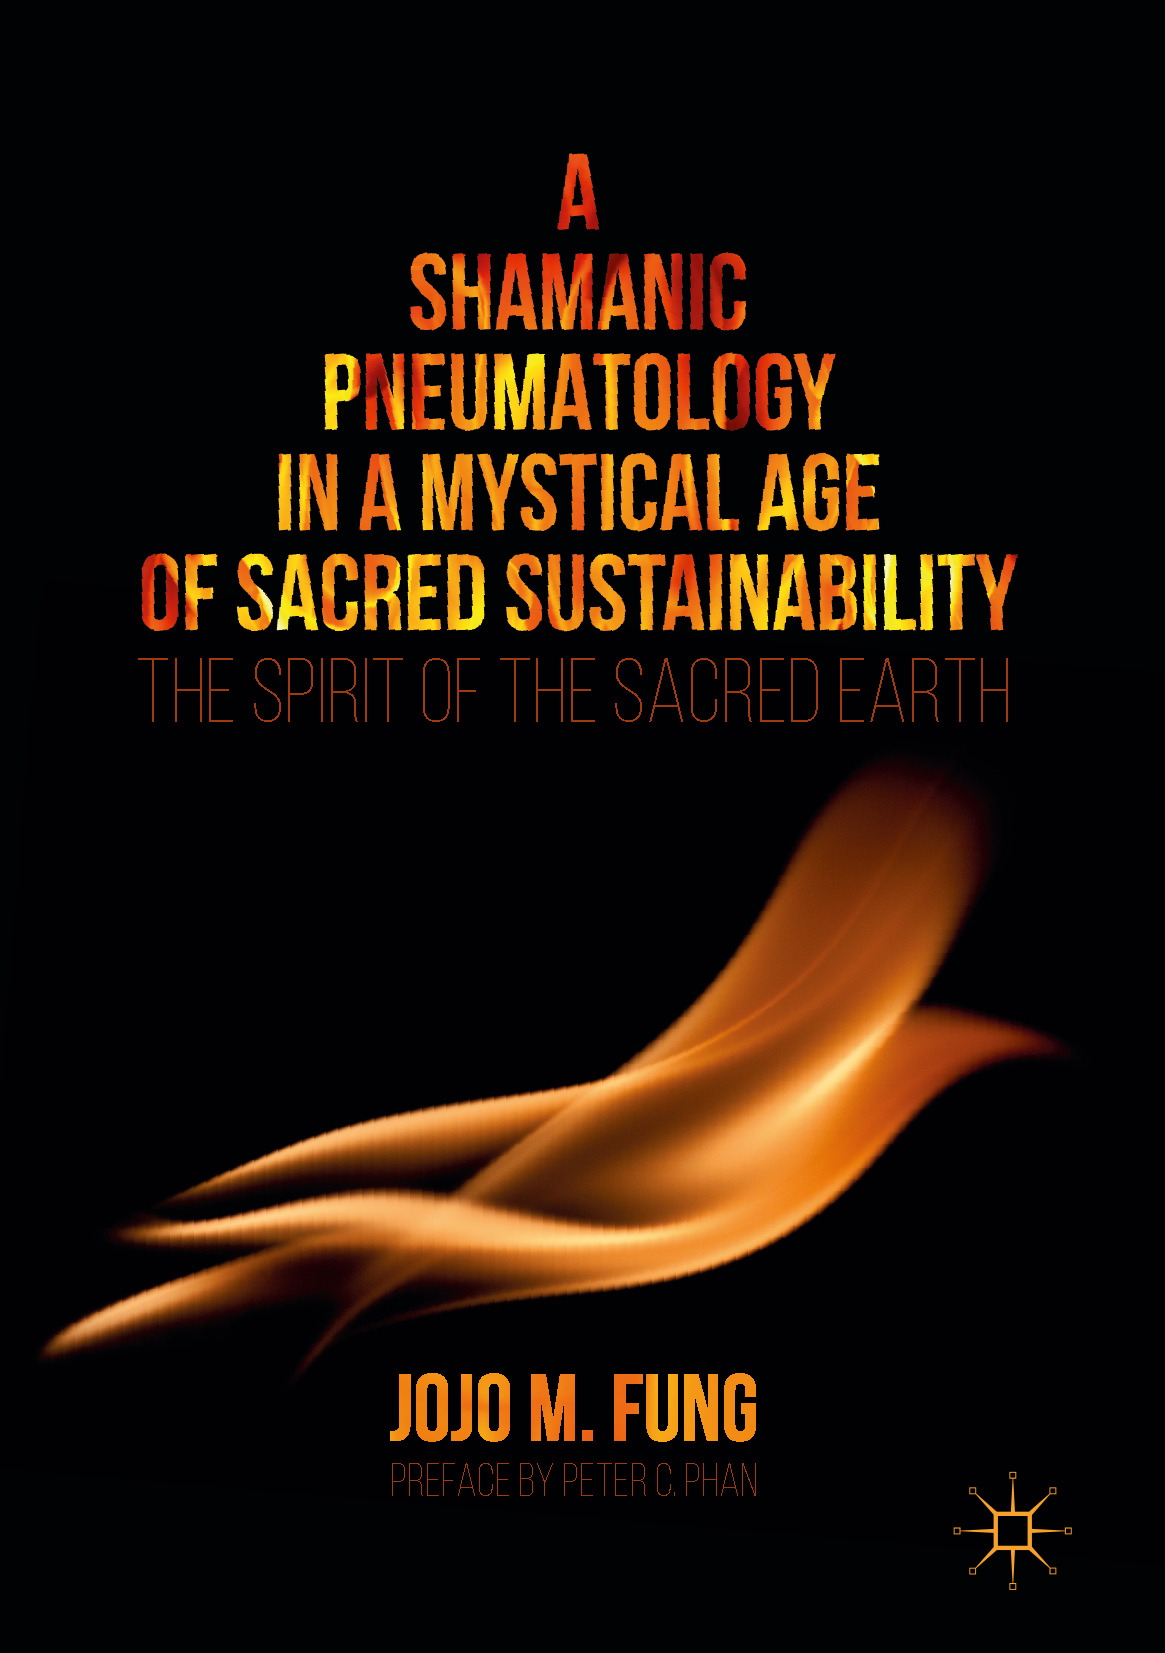 Fung, Jojo M. - A Shamanic Pneumatology in a Mystical Age of Sacred Sustainability, ebook